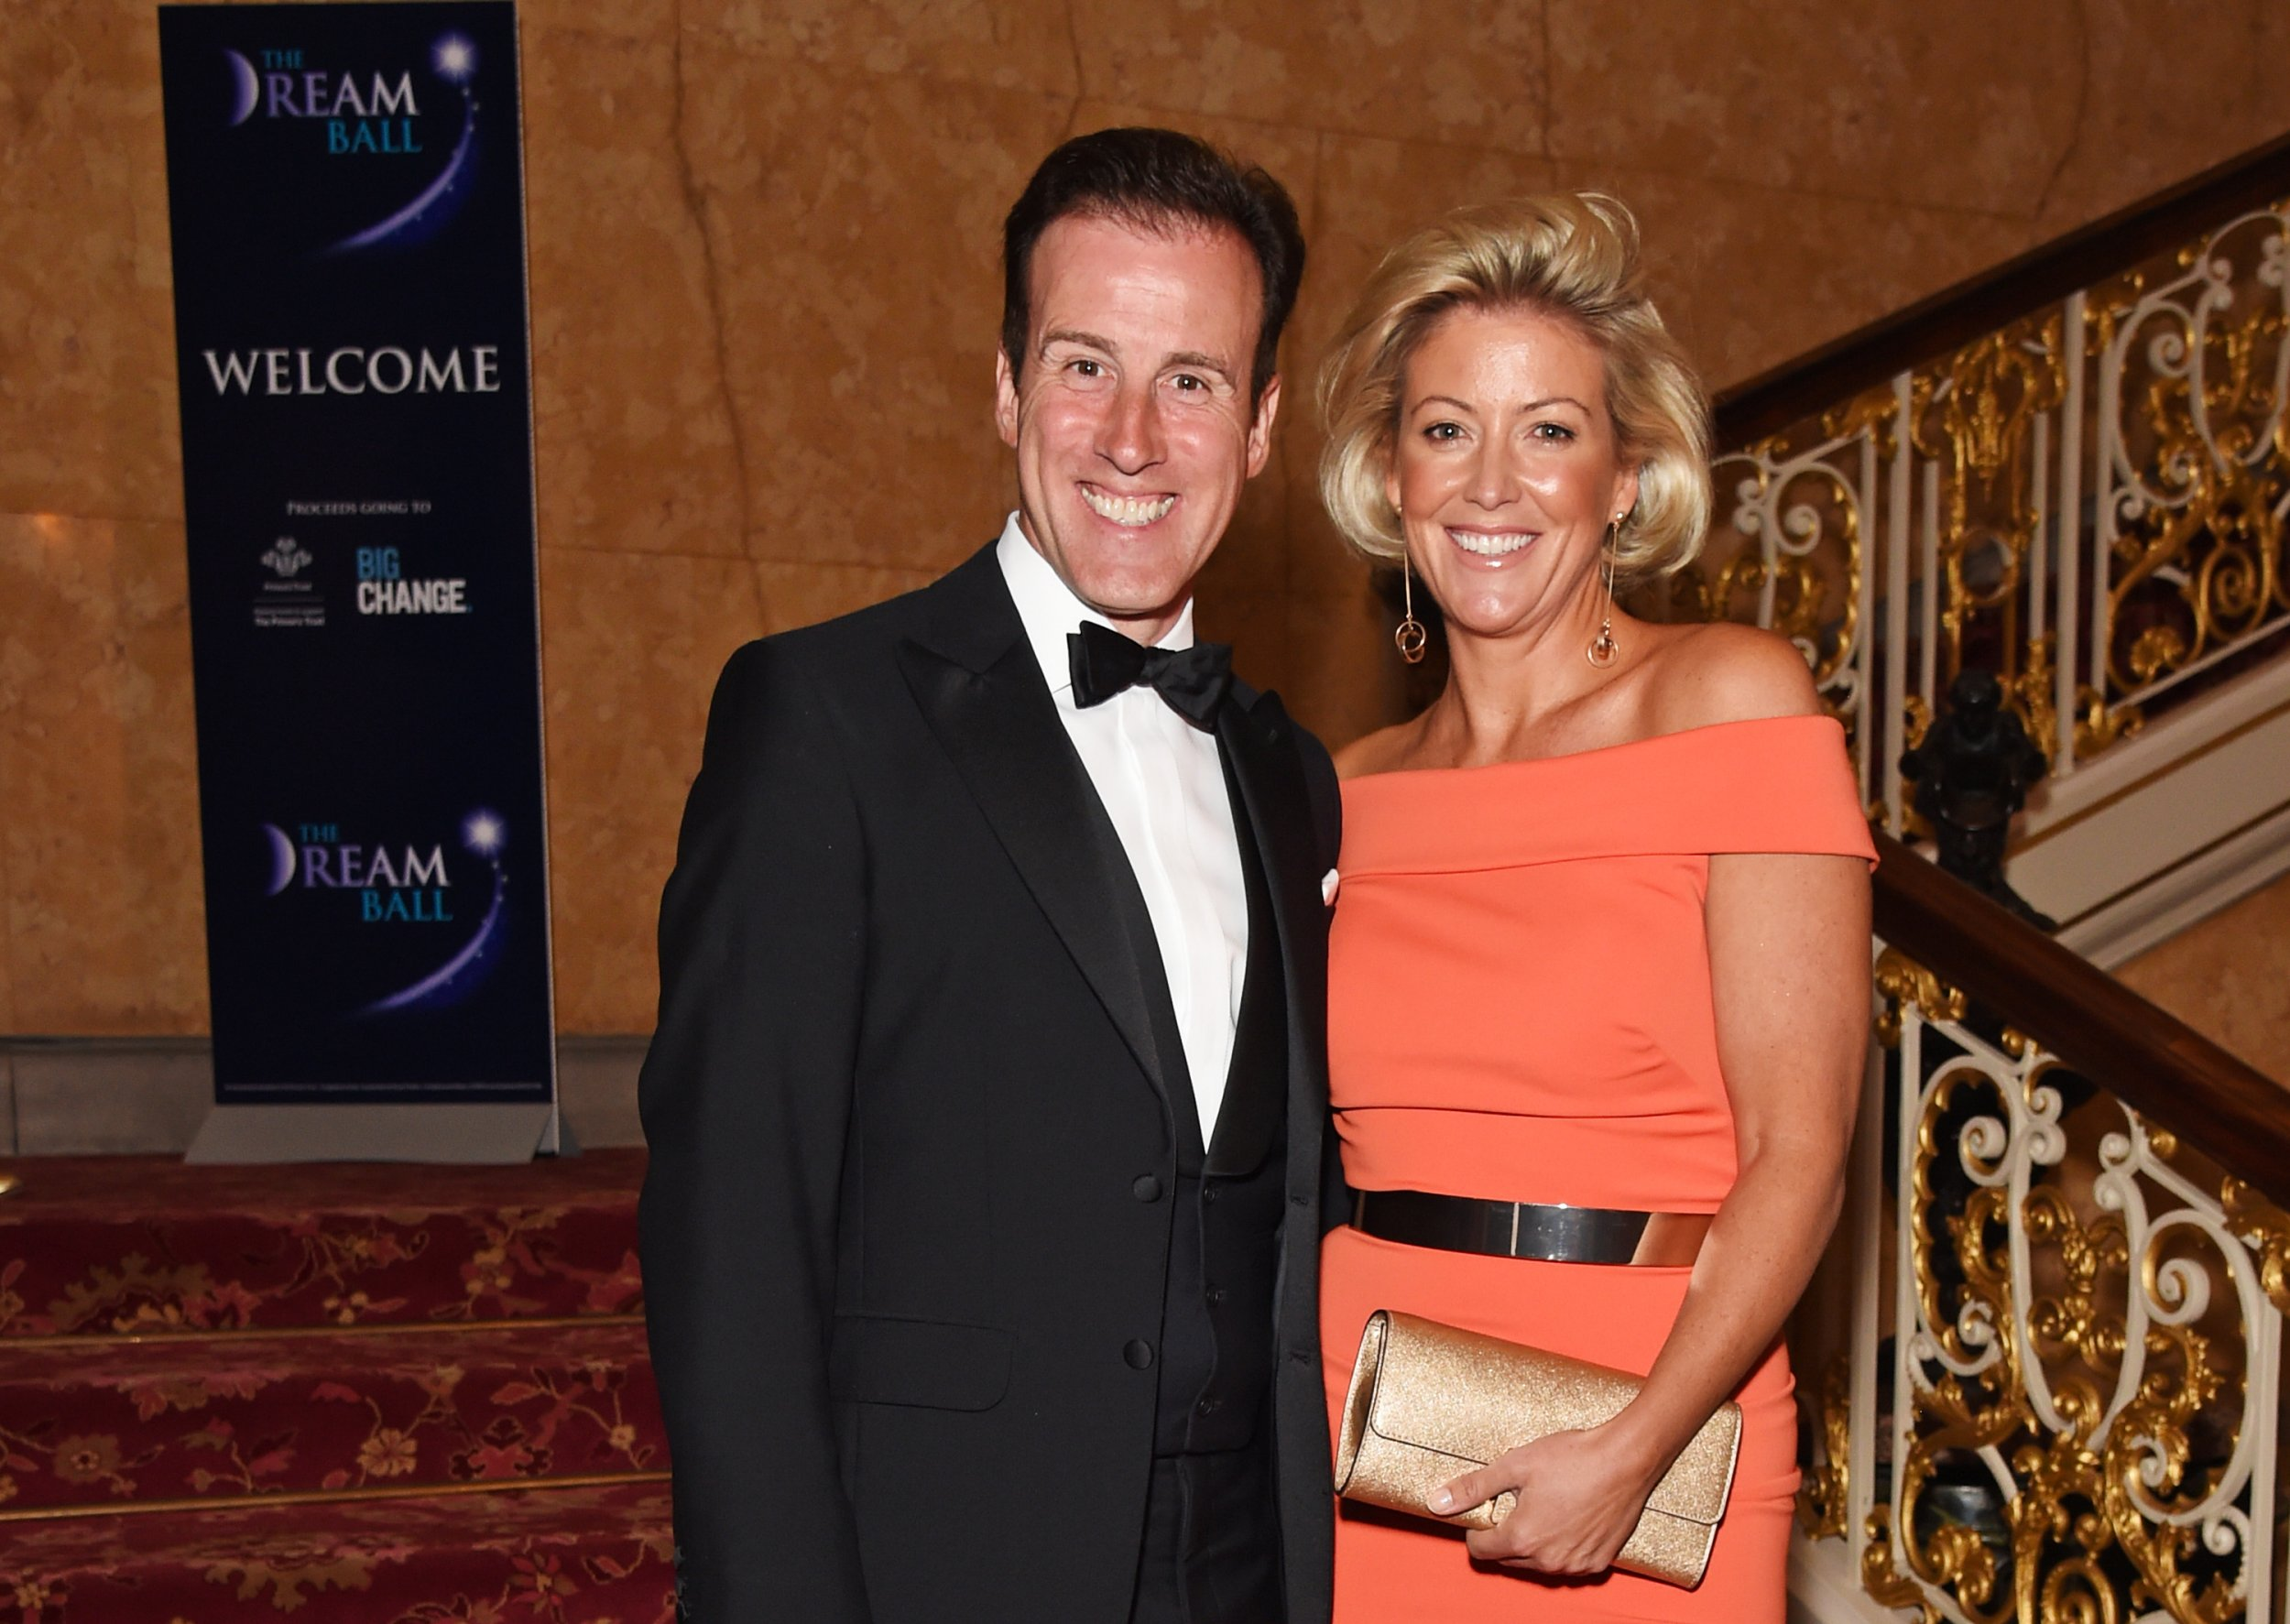 LONDON, ENGLAND - JULY 07: Anton du Beke (L) and Hannah Summers attend The Dream Ball in aid of The Prince's Trust and Big Change at Lancaster House on July 7, 2016 in London, United Kingdom. (Photo by David M. Benett/Dave Benett/Getty Images for Annesley Abercorn - The Dream Ball)